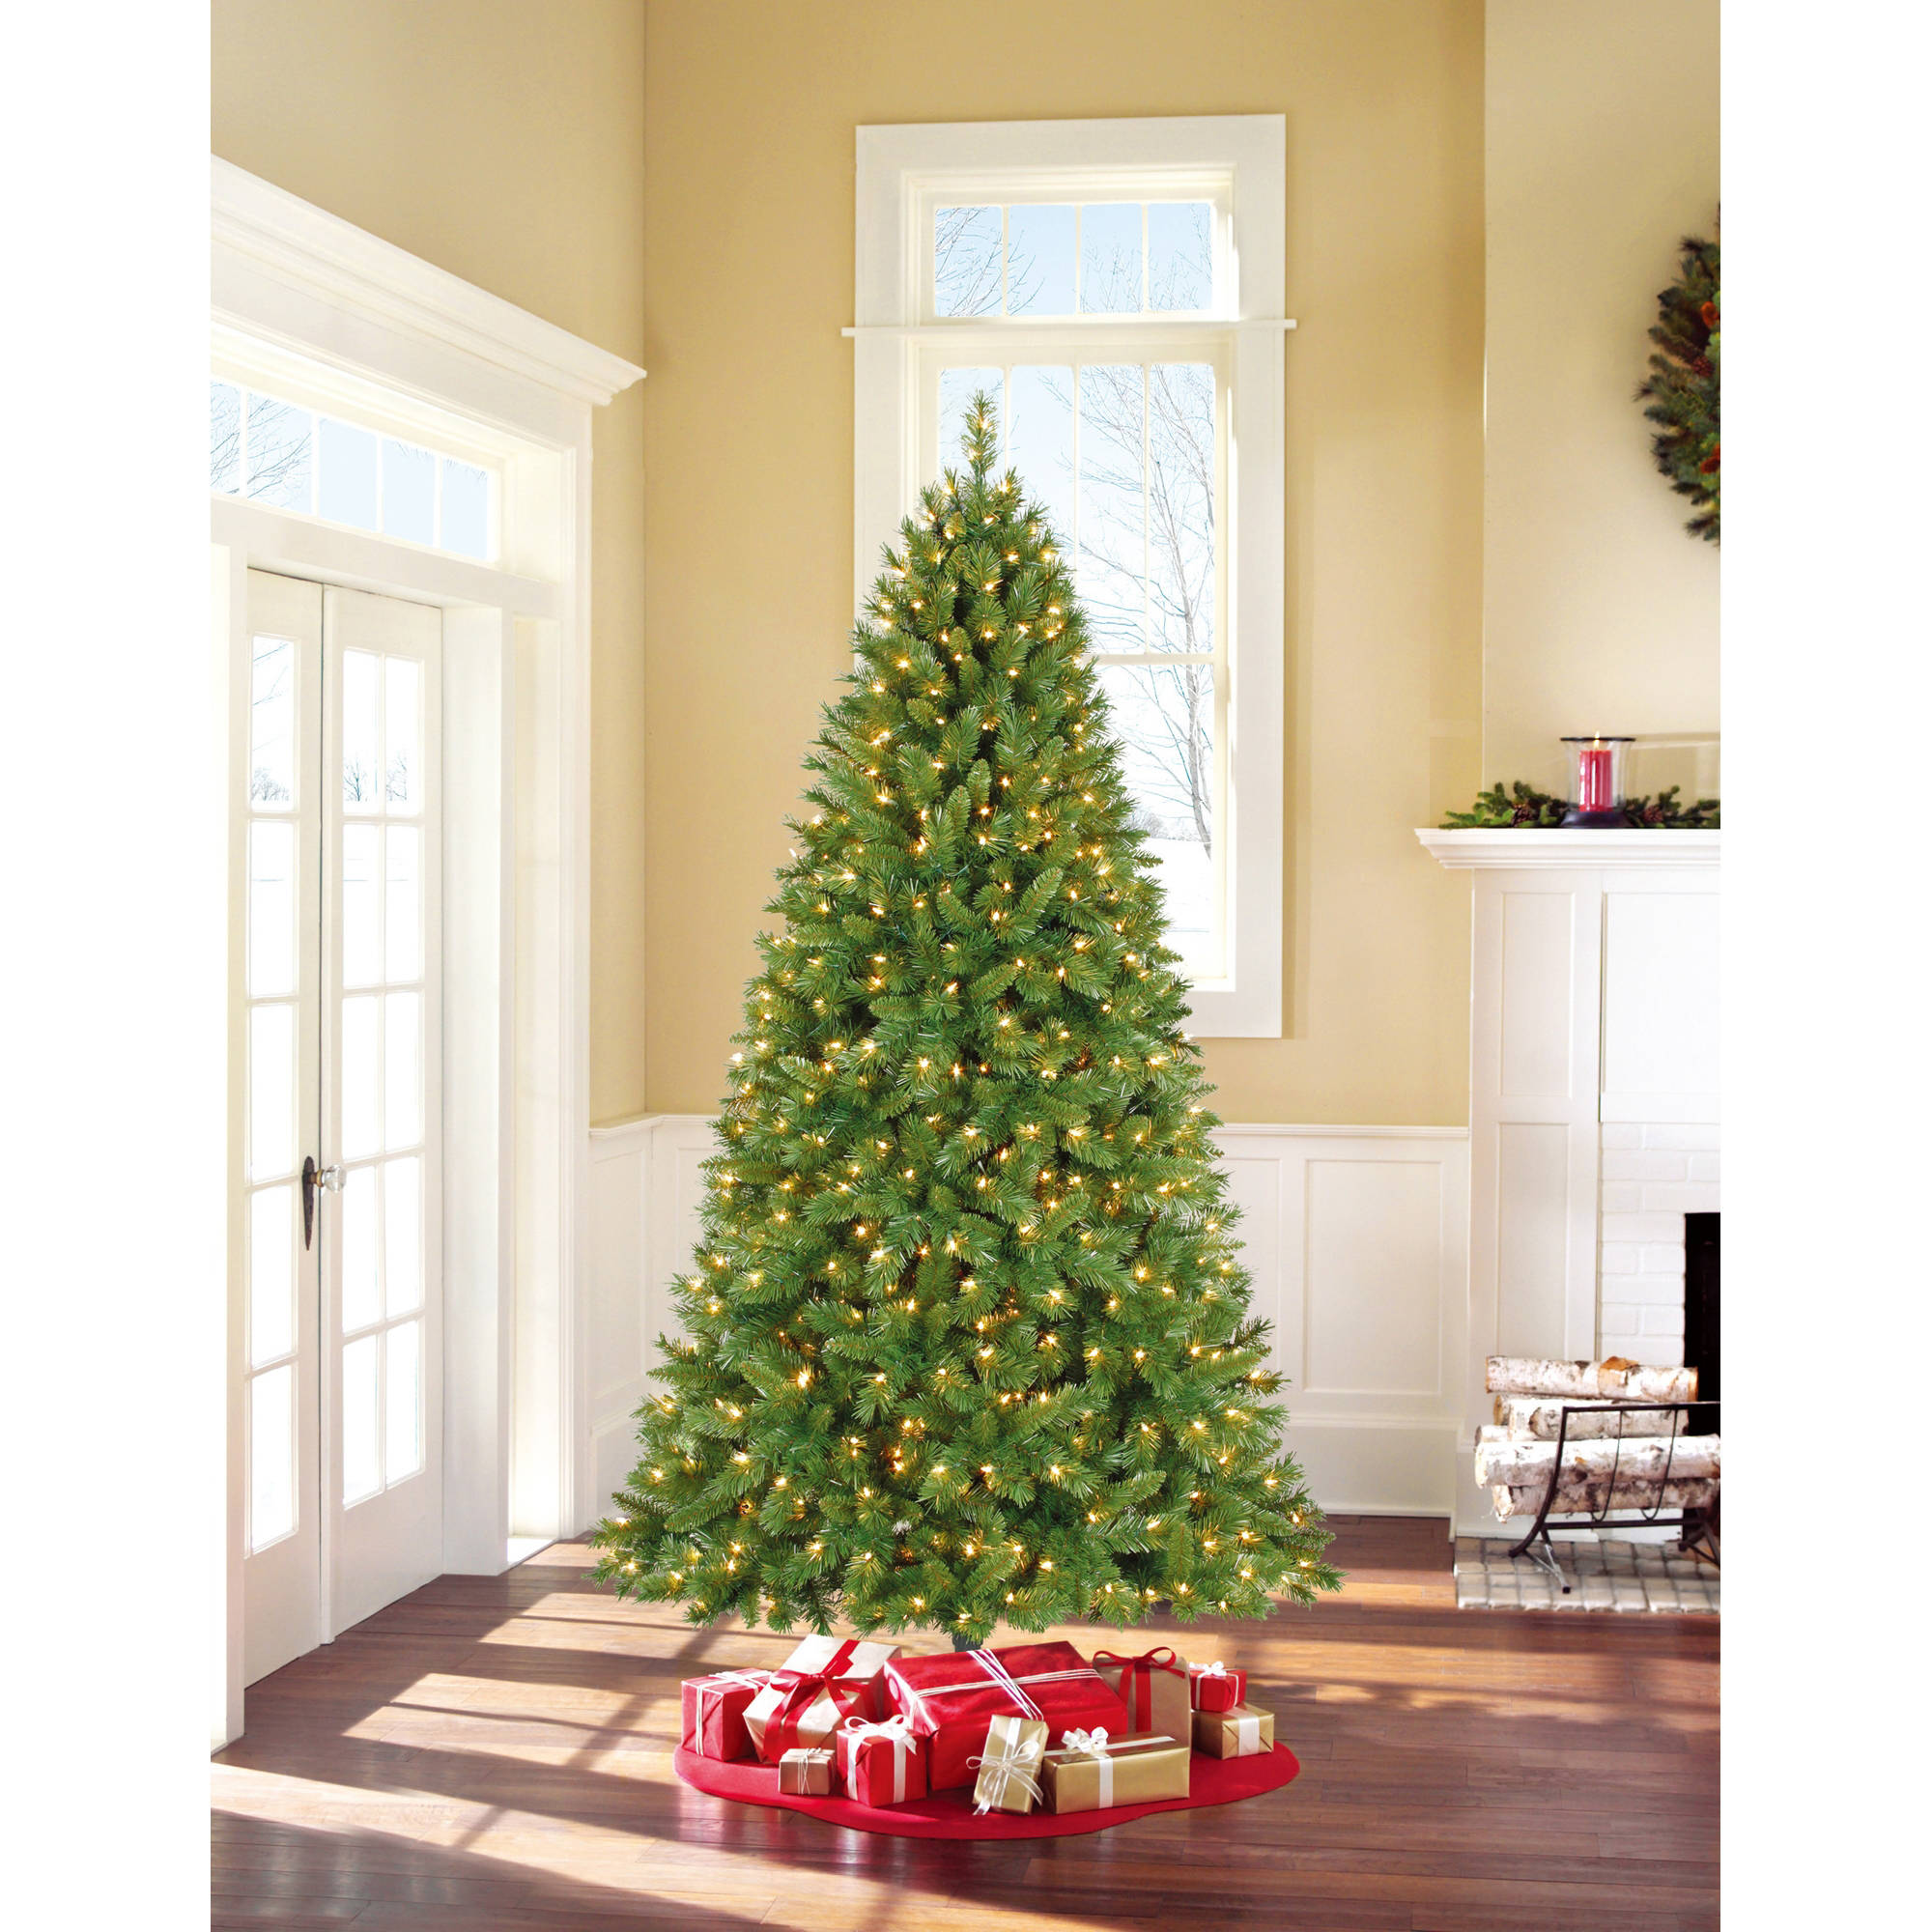 best choice products 7ft pre lit fiber optic artificial christmas pine tree w 280 lights 8 sequences stand green walmartcom - Walmart Christmas Tree Prices